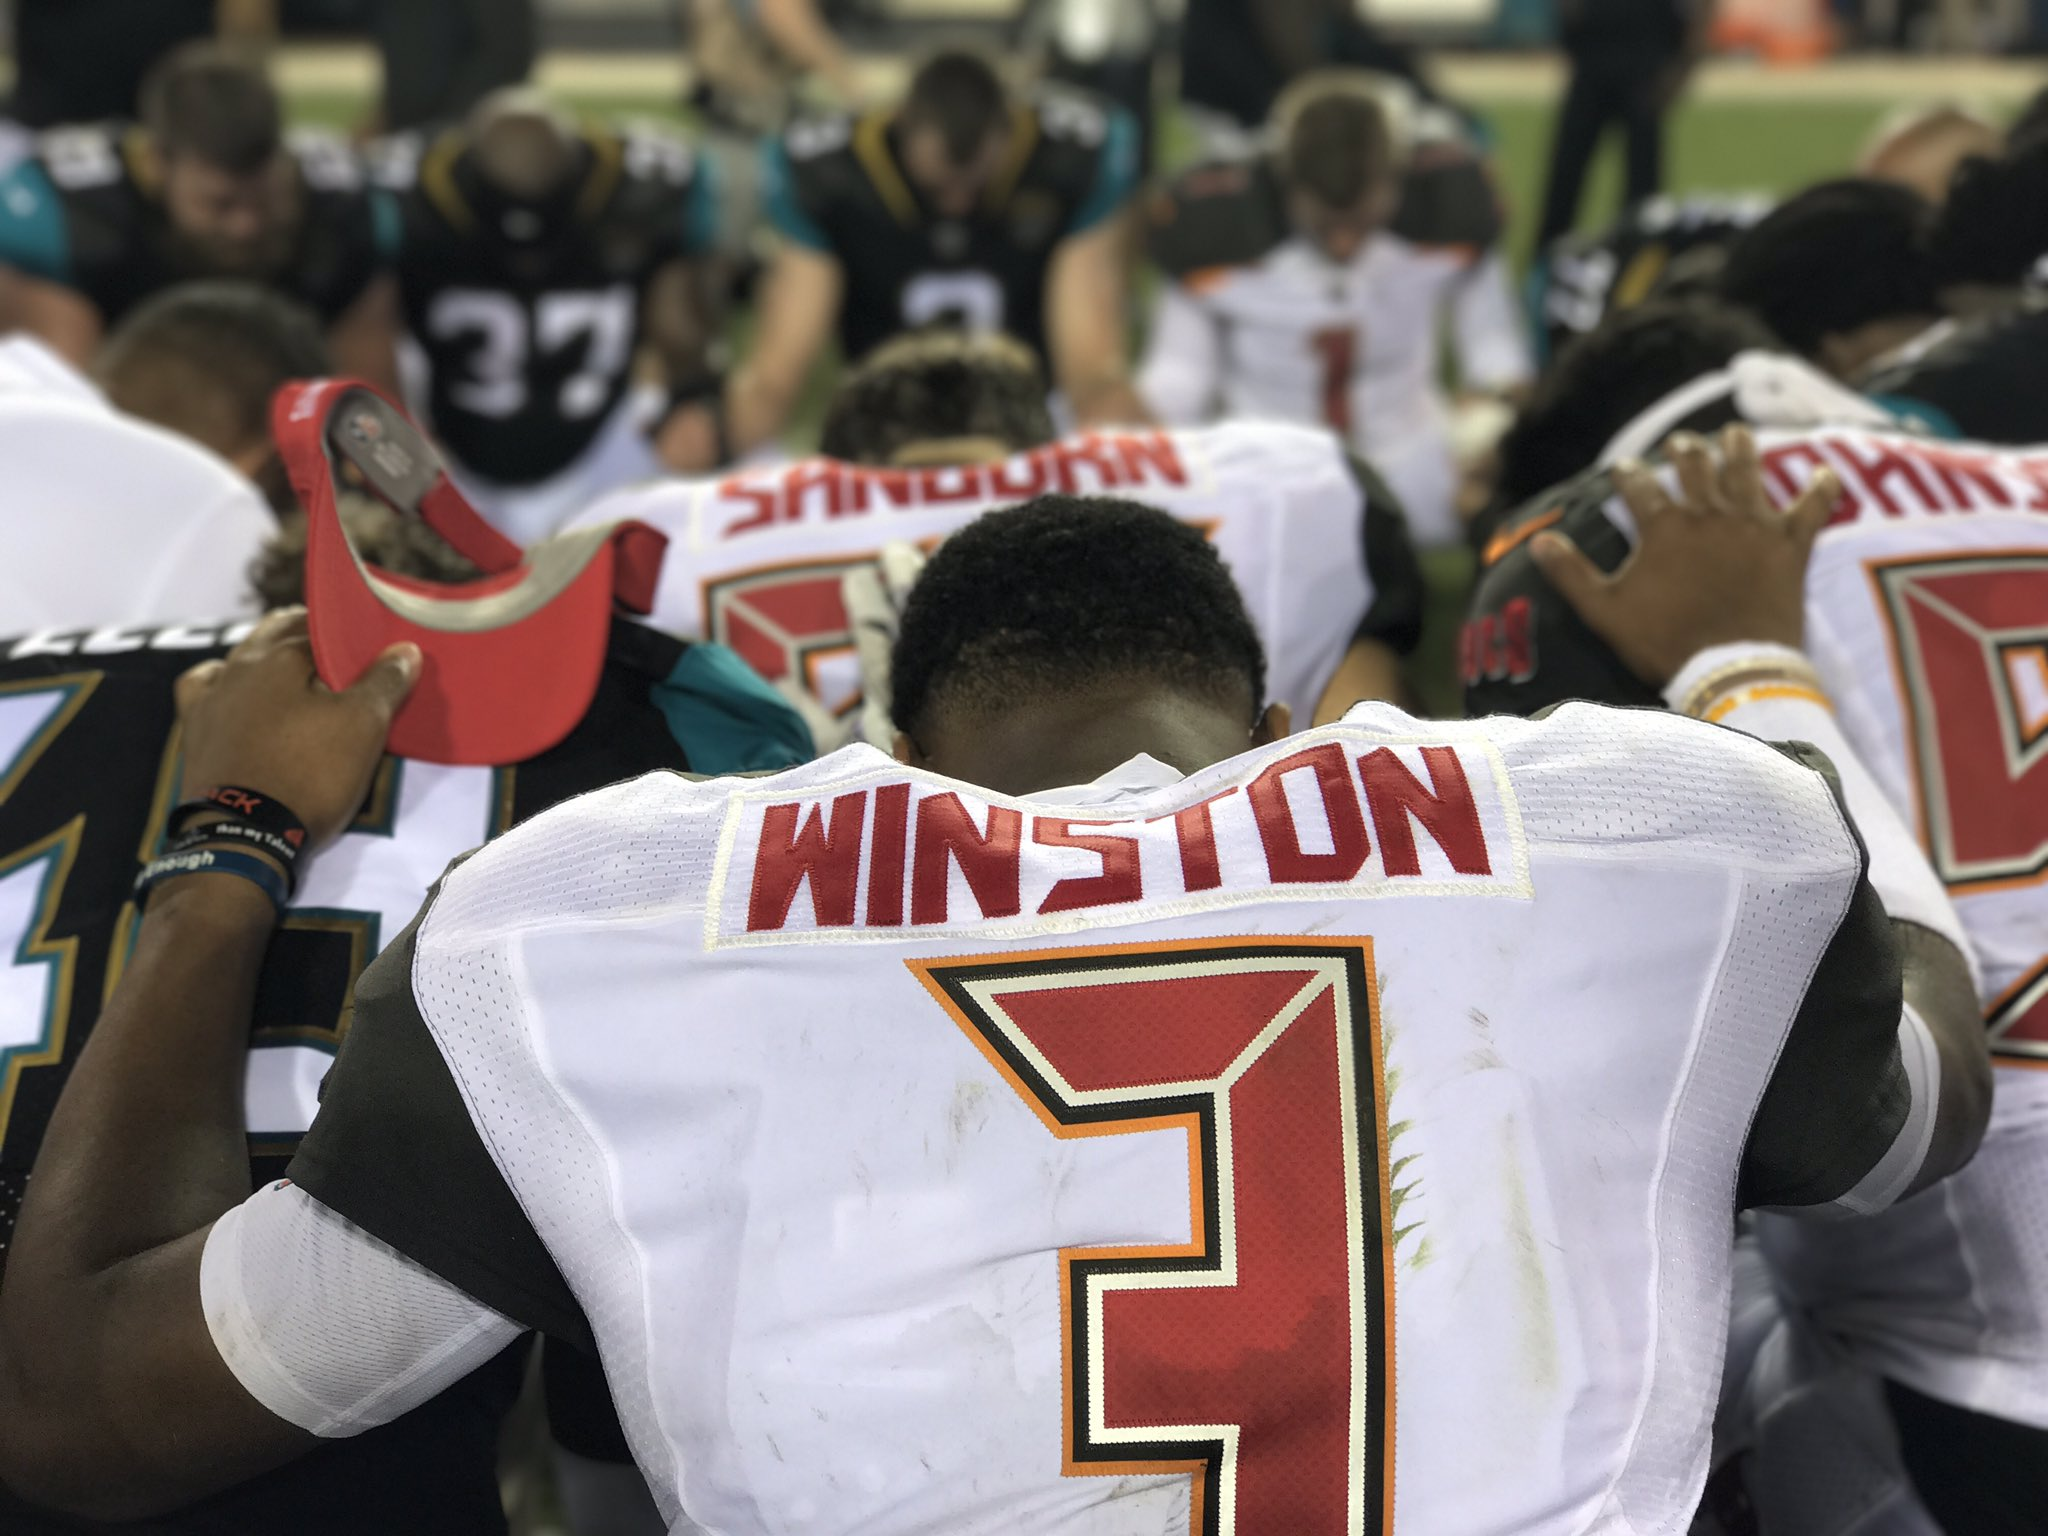 Bucs and Jags share a moment after the game �� https://t.co/aqX2t0UoQo